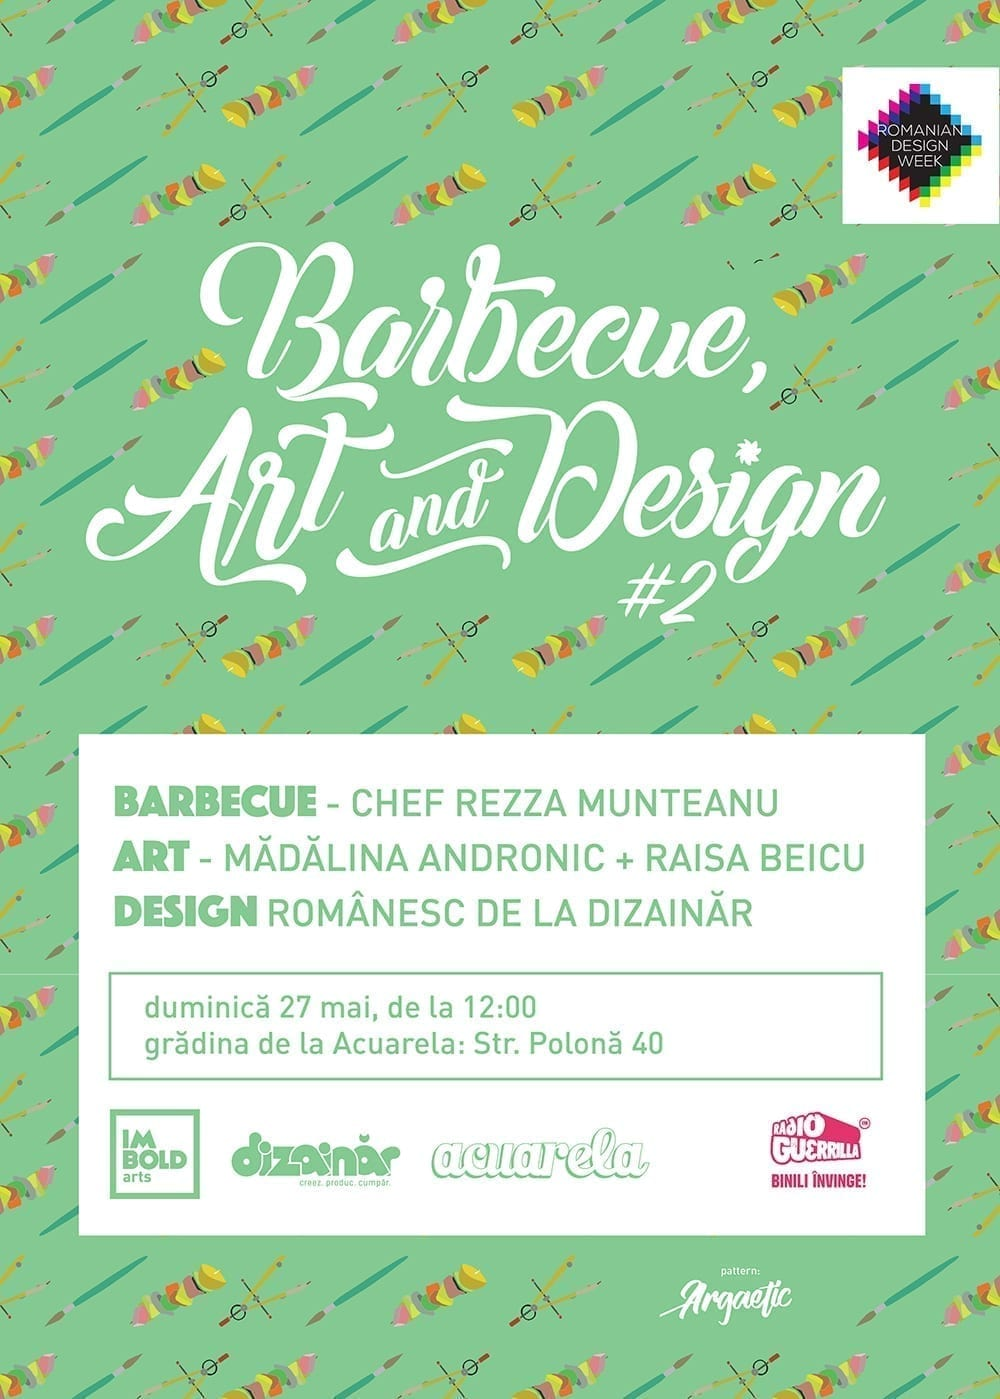 Barbecue, Art & Design 2 la Acuarela de Romanian Design Week